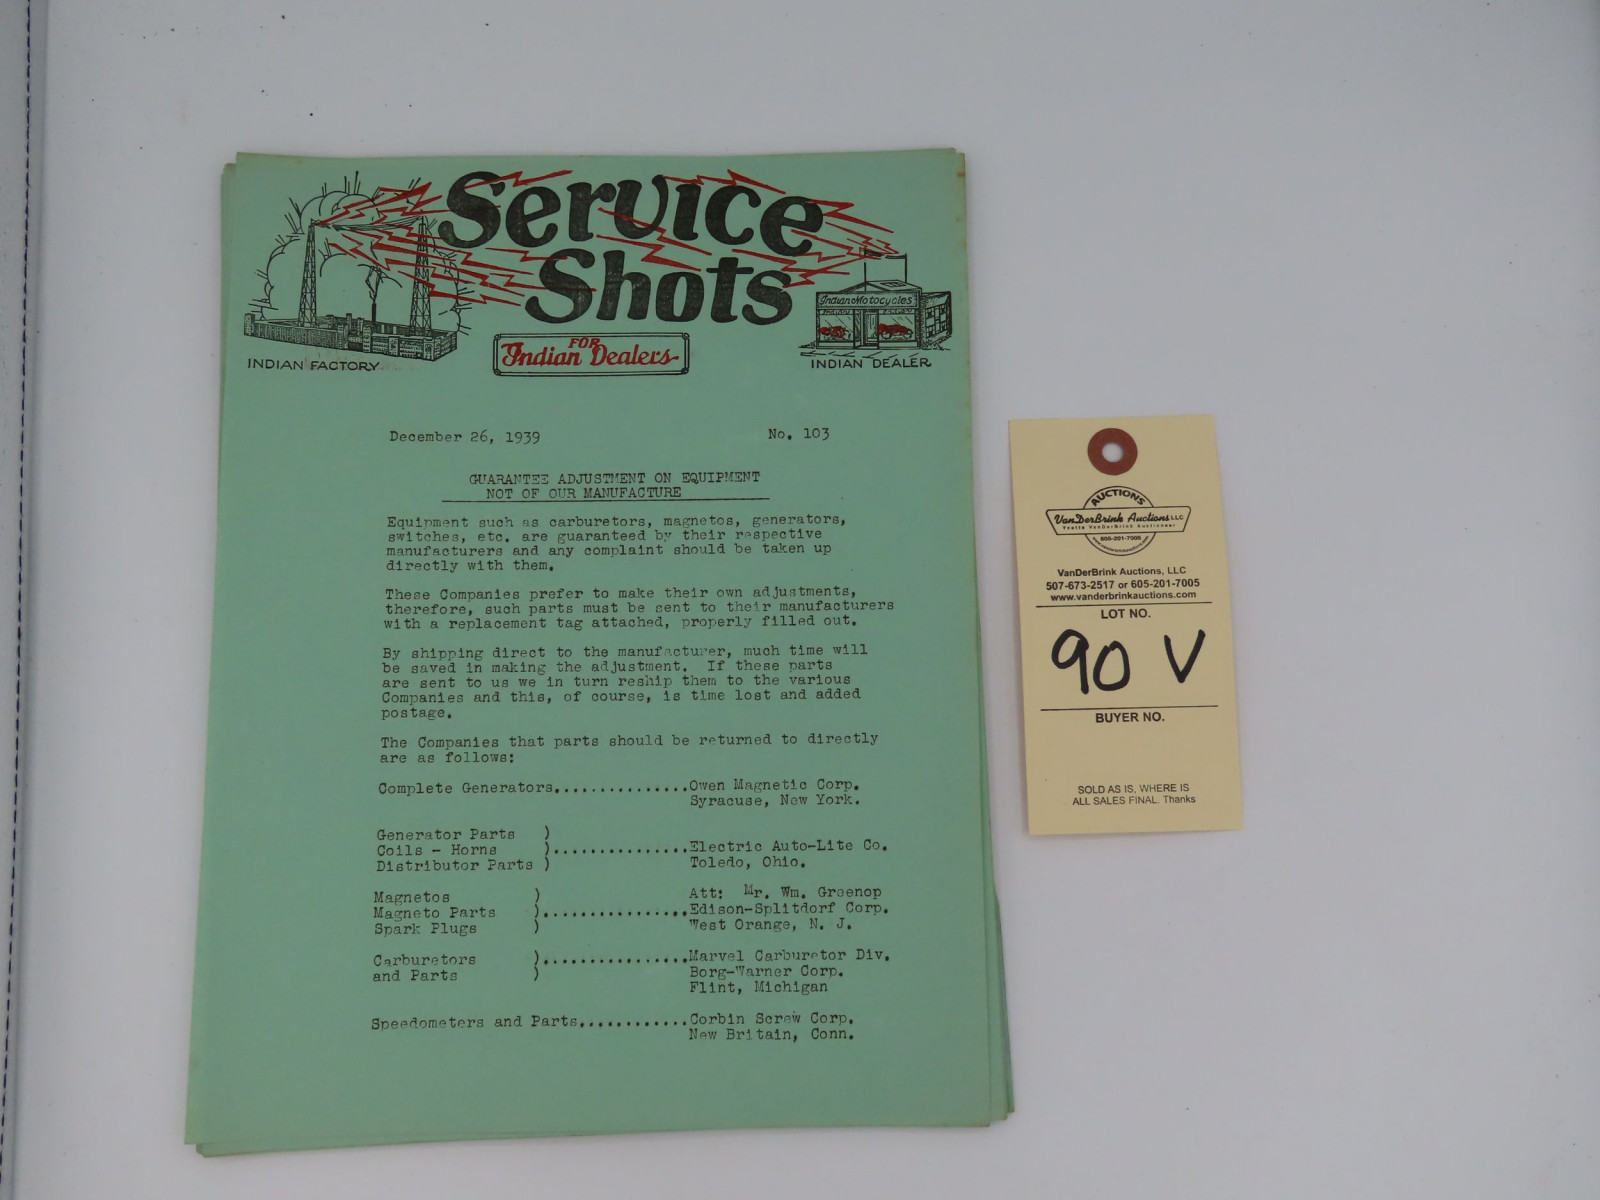 Service Shots for Indian Dealers, dated December 26, 1939 - Image 1